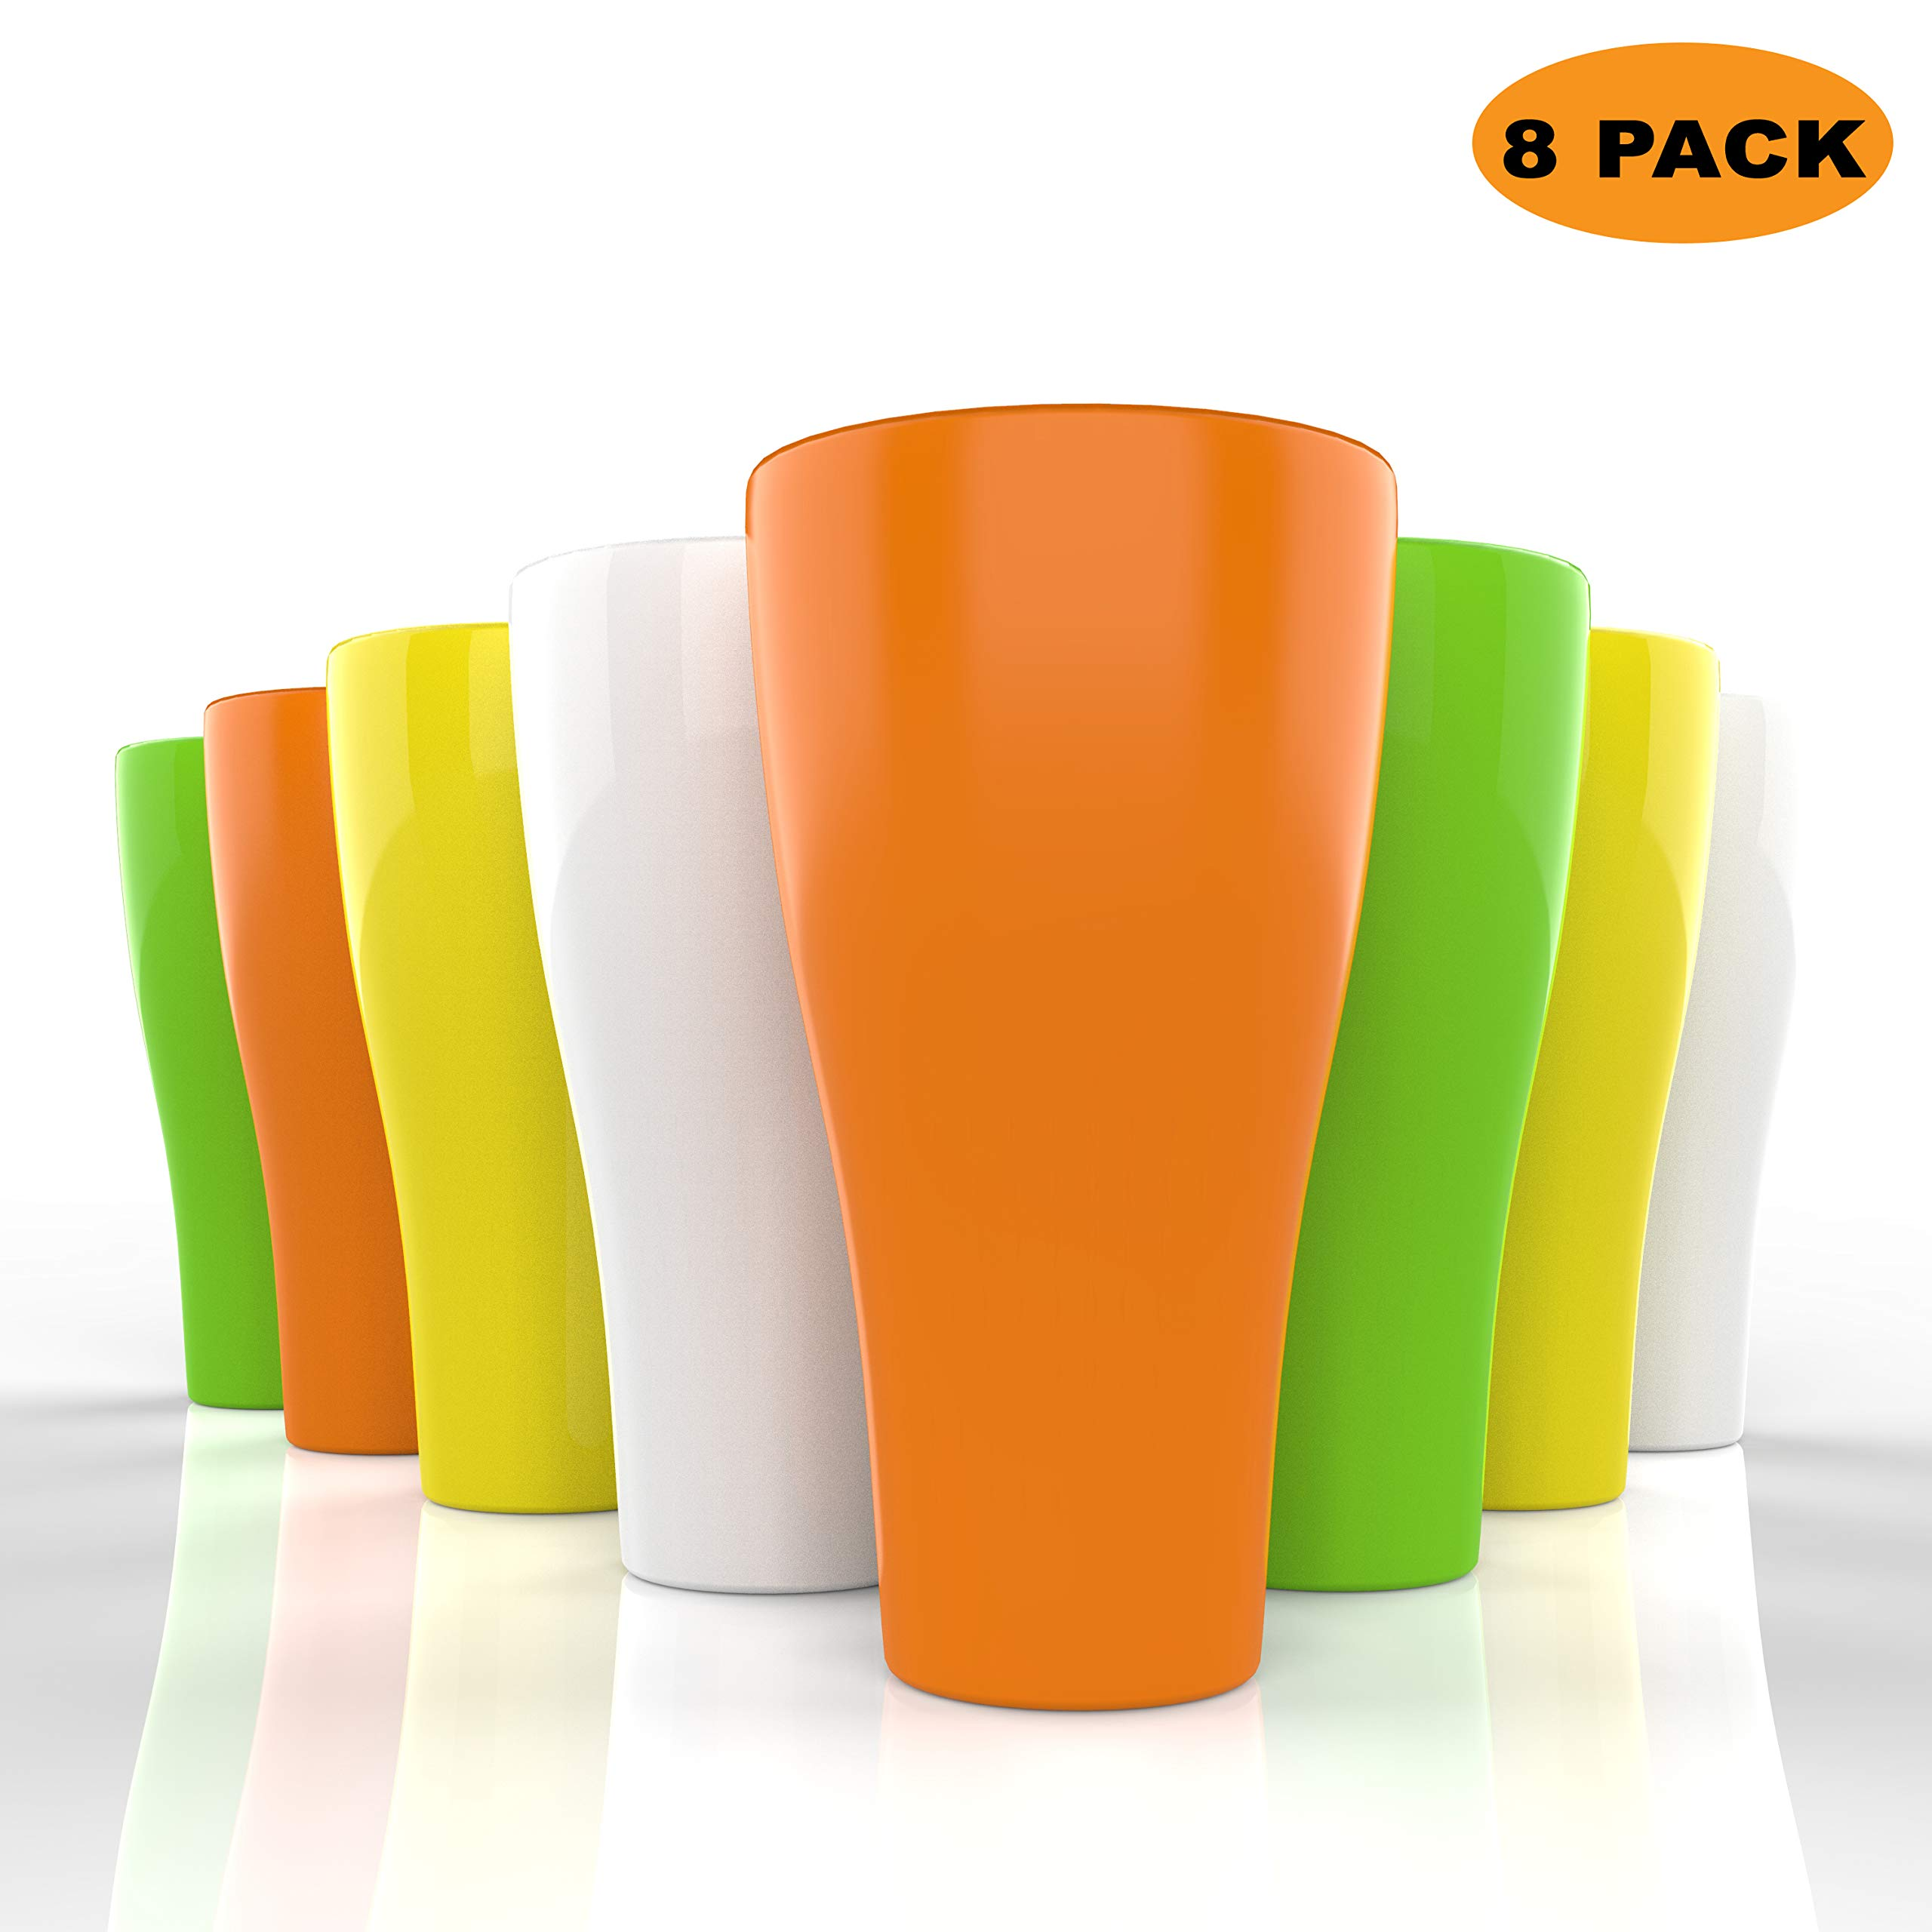 Unbreakable Sturdy Plastic Tumbler Cups - 17 oz - Set of 8 - Sturdy Durable Plastic Glasses Set - Break Resistant Reusable Outdoor Drinkware Large Dishwasher Safe Colorful Beverage Cup Tumblers by ML&LSK